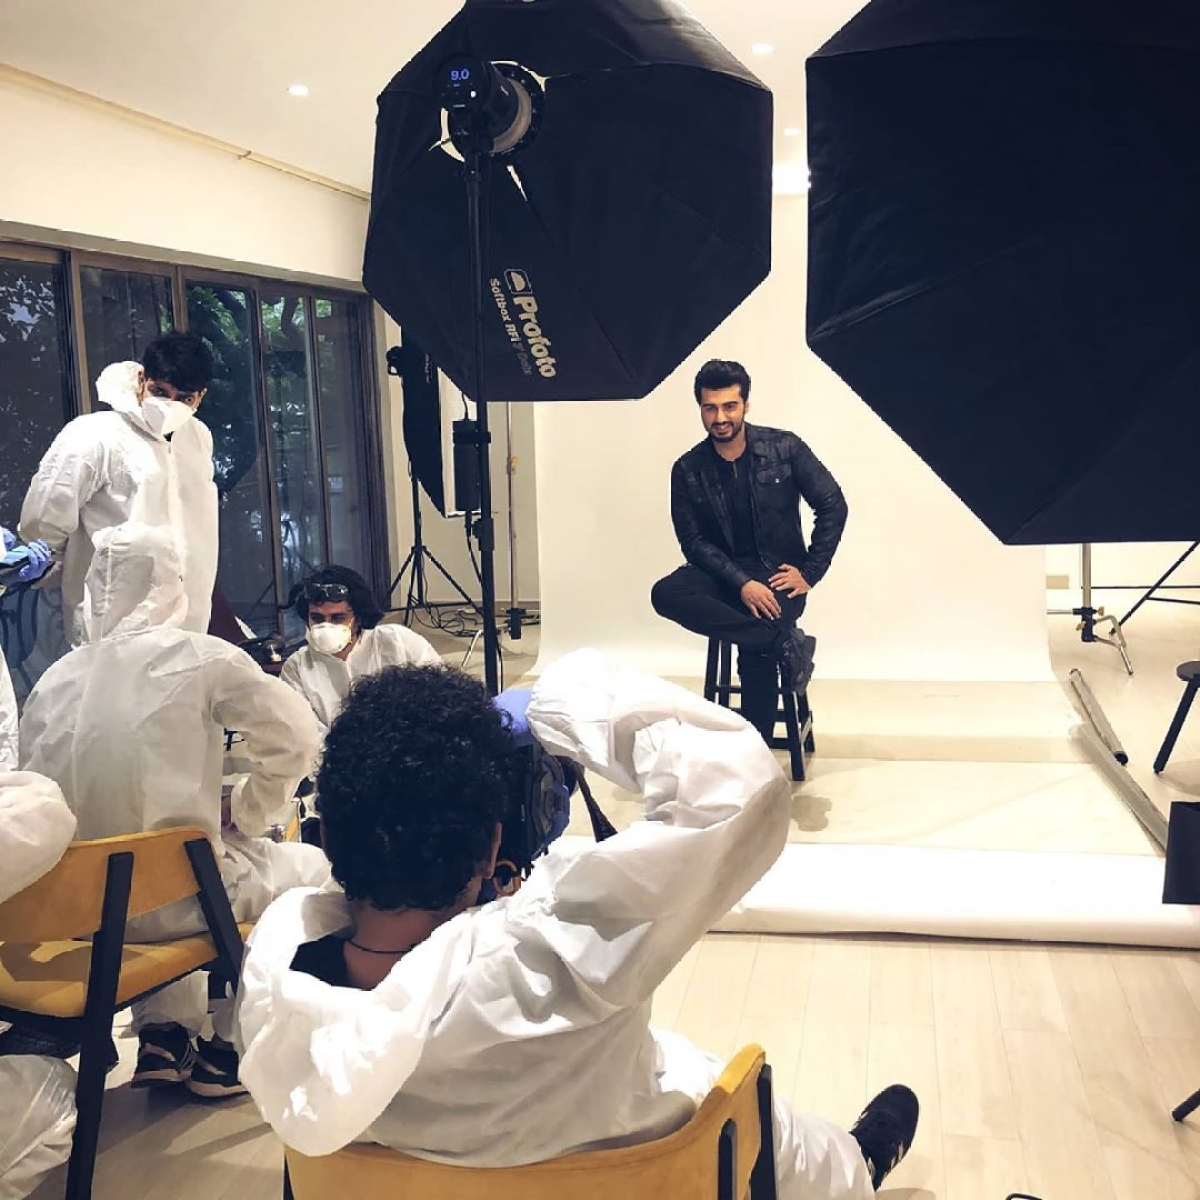 Arjun Kapoor accepts 'new world order' as he resumes work amid COVID-19 pandemic